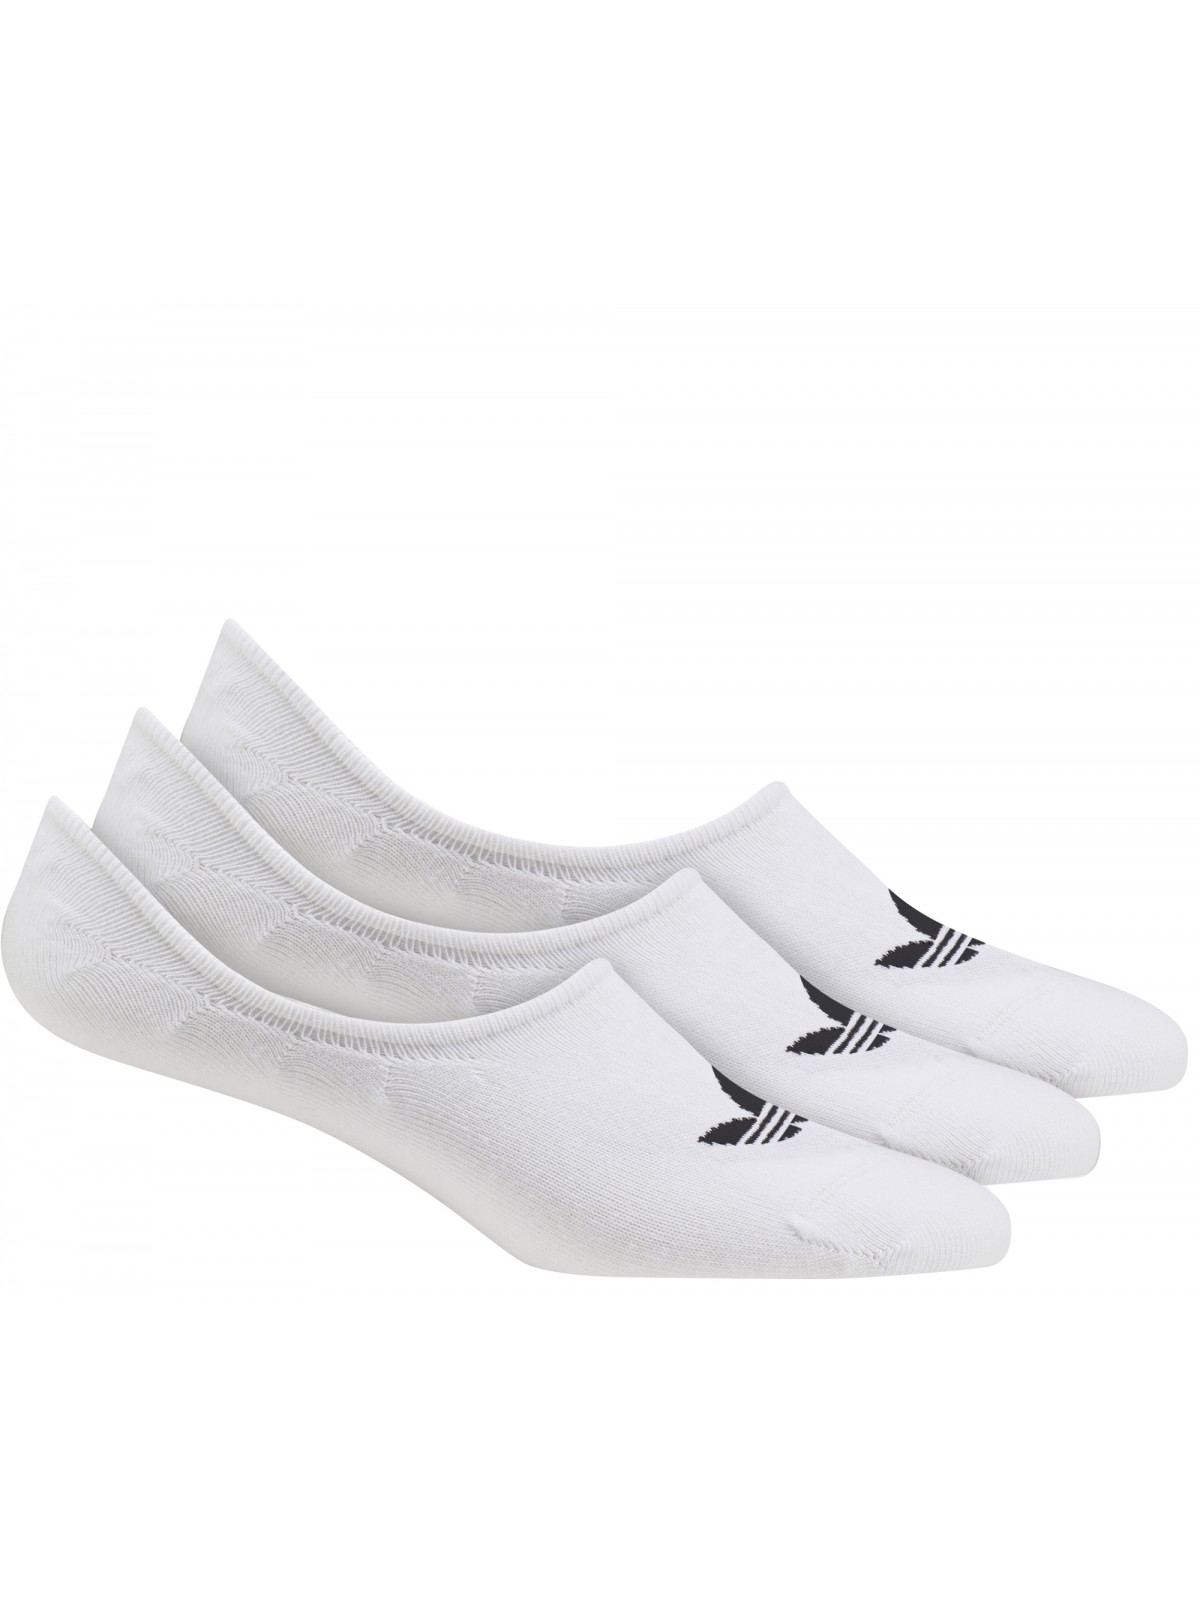 ADIDAS Socks Tref Low Cut blanc noir